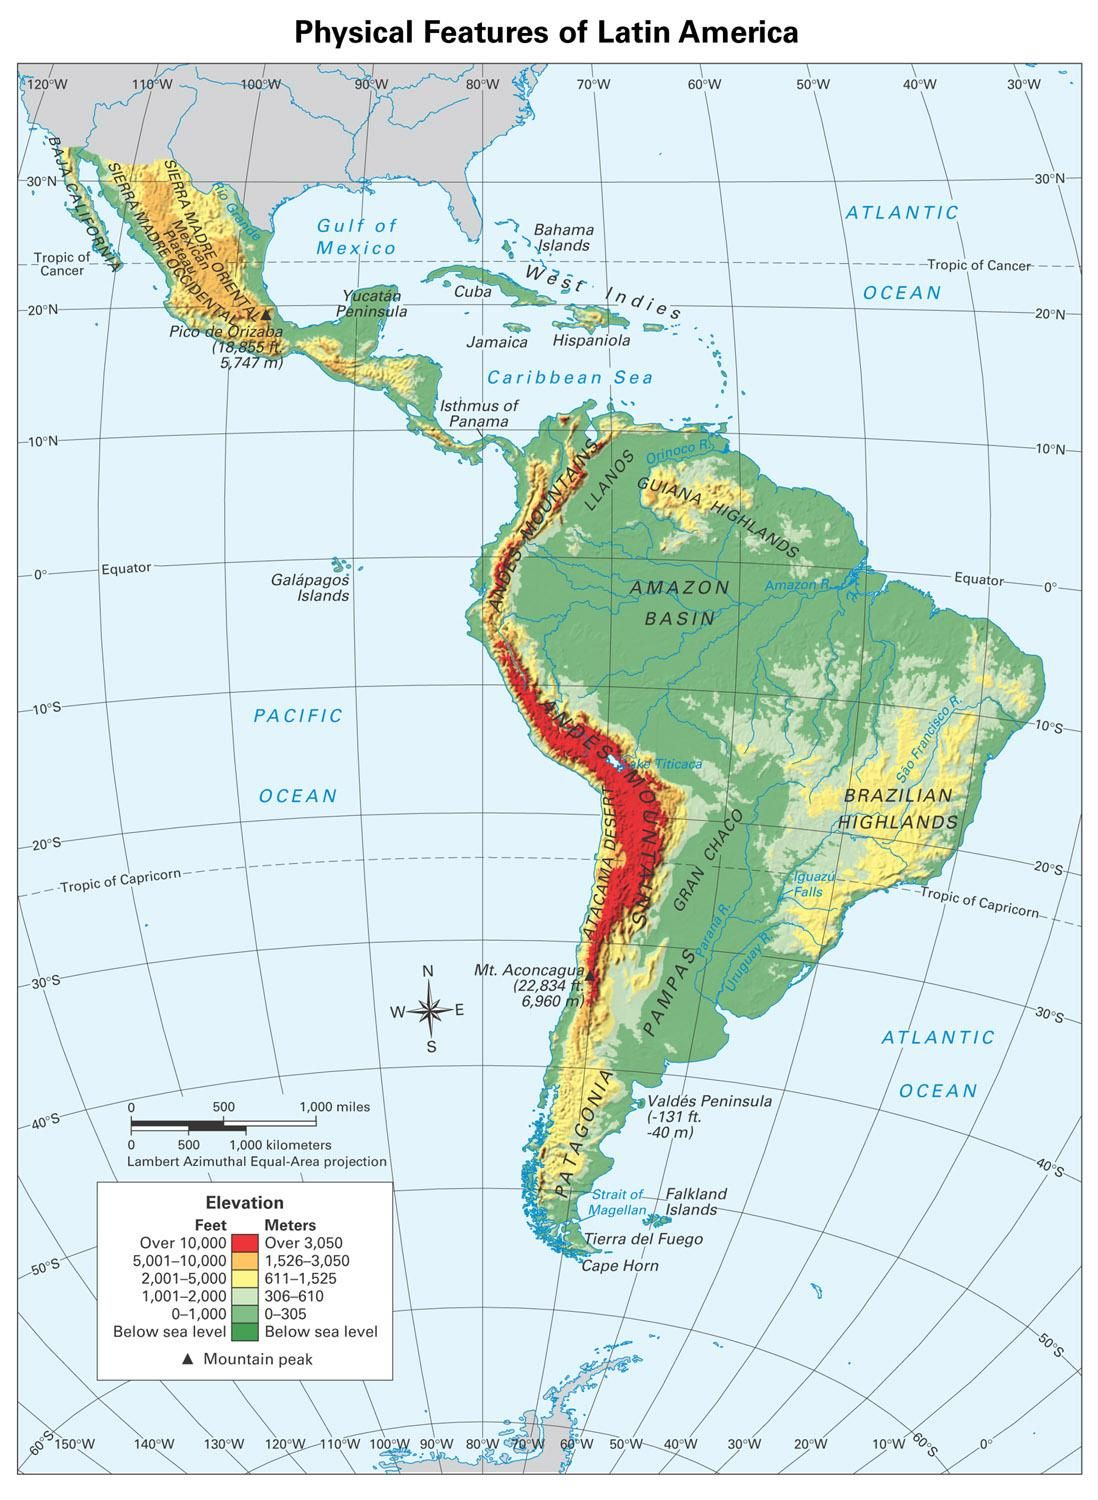 south america features map - zrom.tk